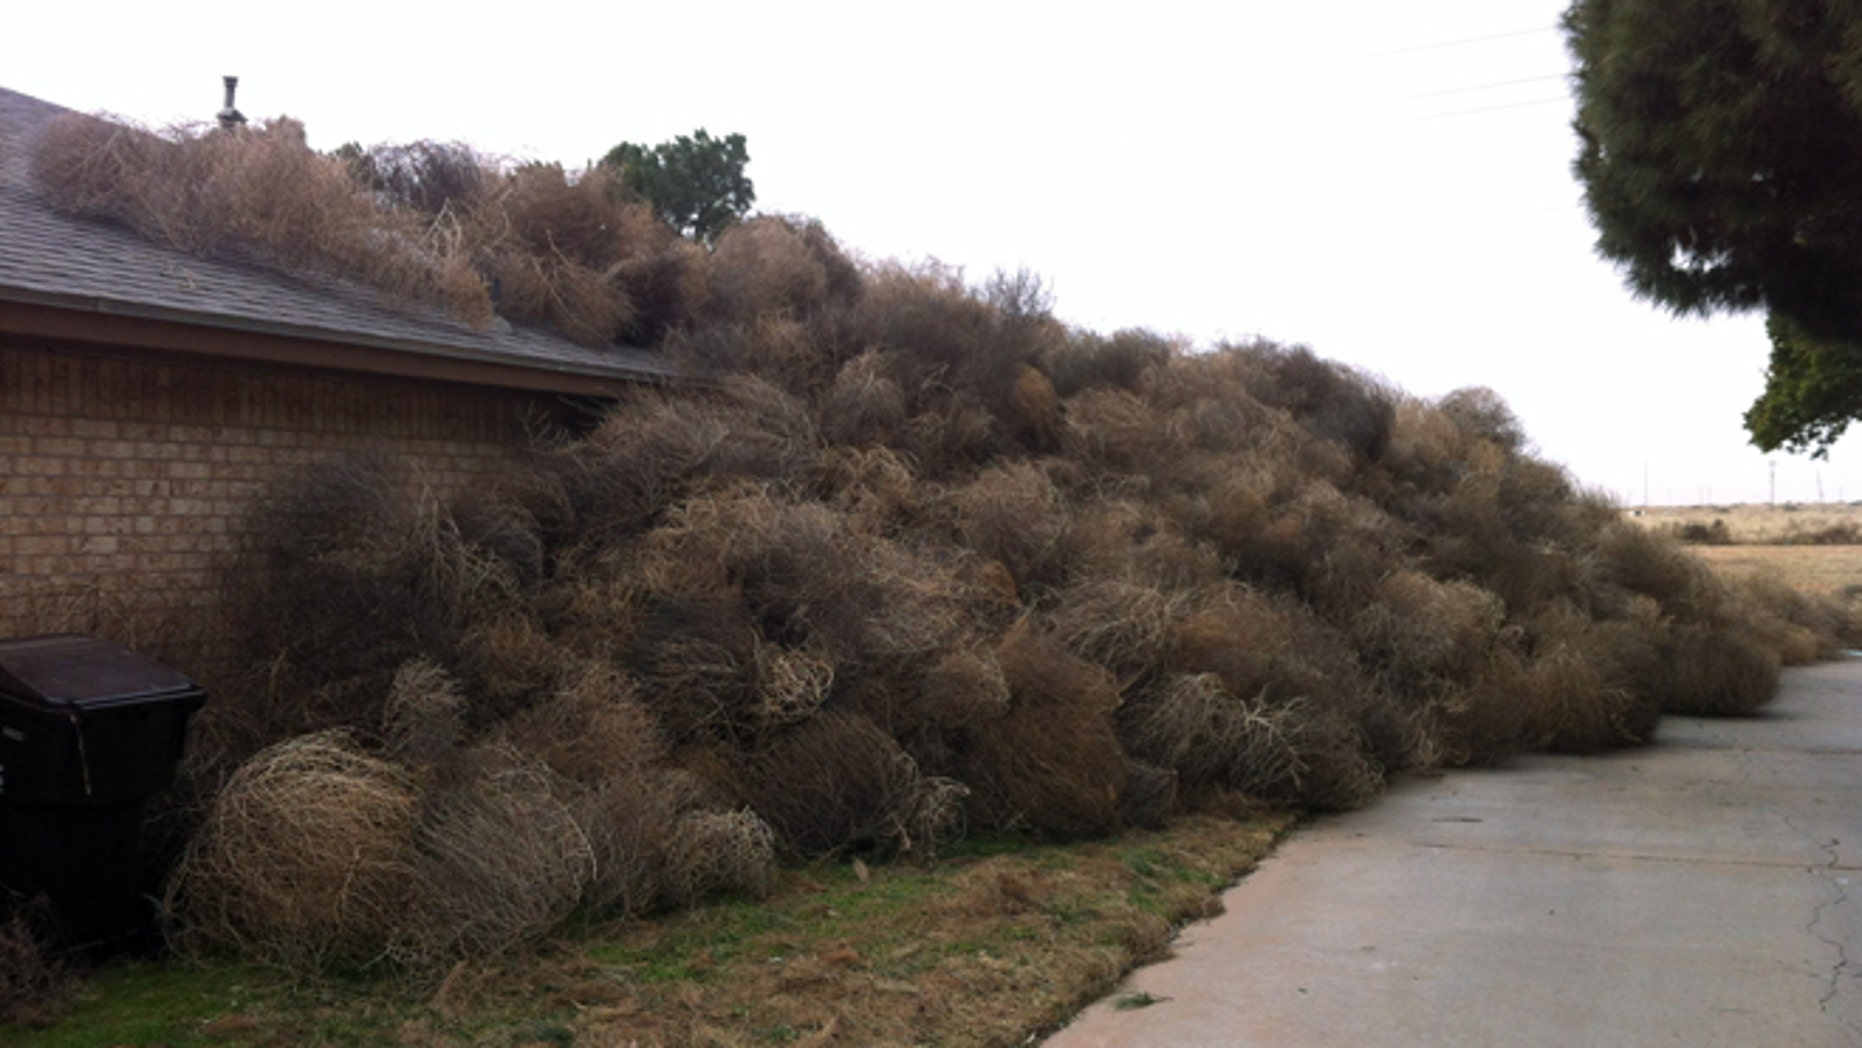 This photo provided by Josh Pitman shows the side of Pitmans' home in Midland, Texas obscured by tumbleweeds. Winds in excess of 60 mph that accompanied Mondays blizzard pushed hundreds of tumbleweeds against the Midland home. Pitman says he recently tore down a fence that would have protected his home from the rambling weeds.